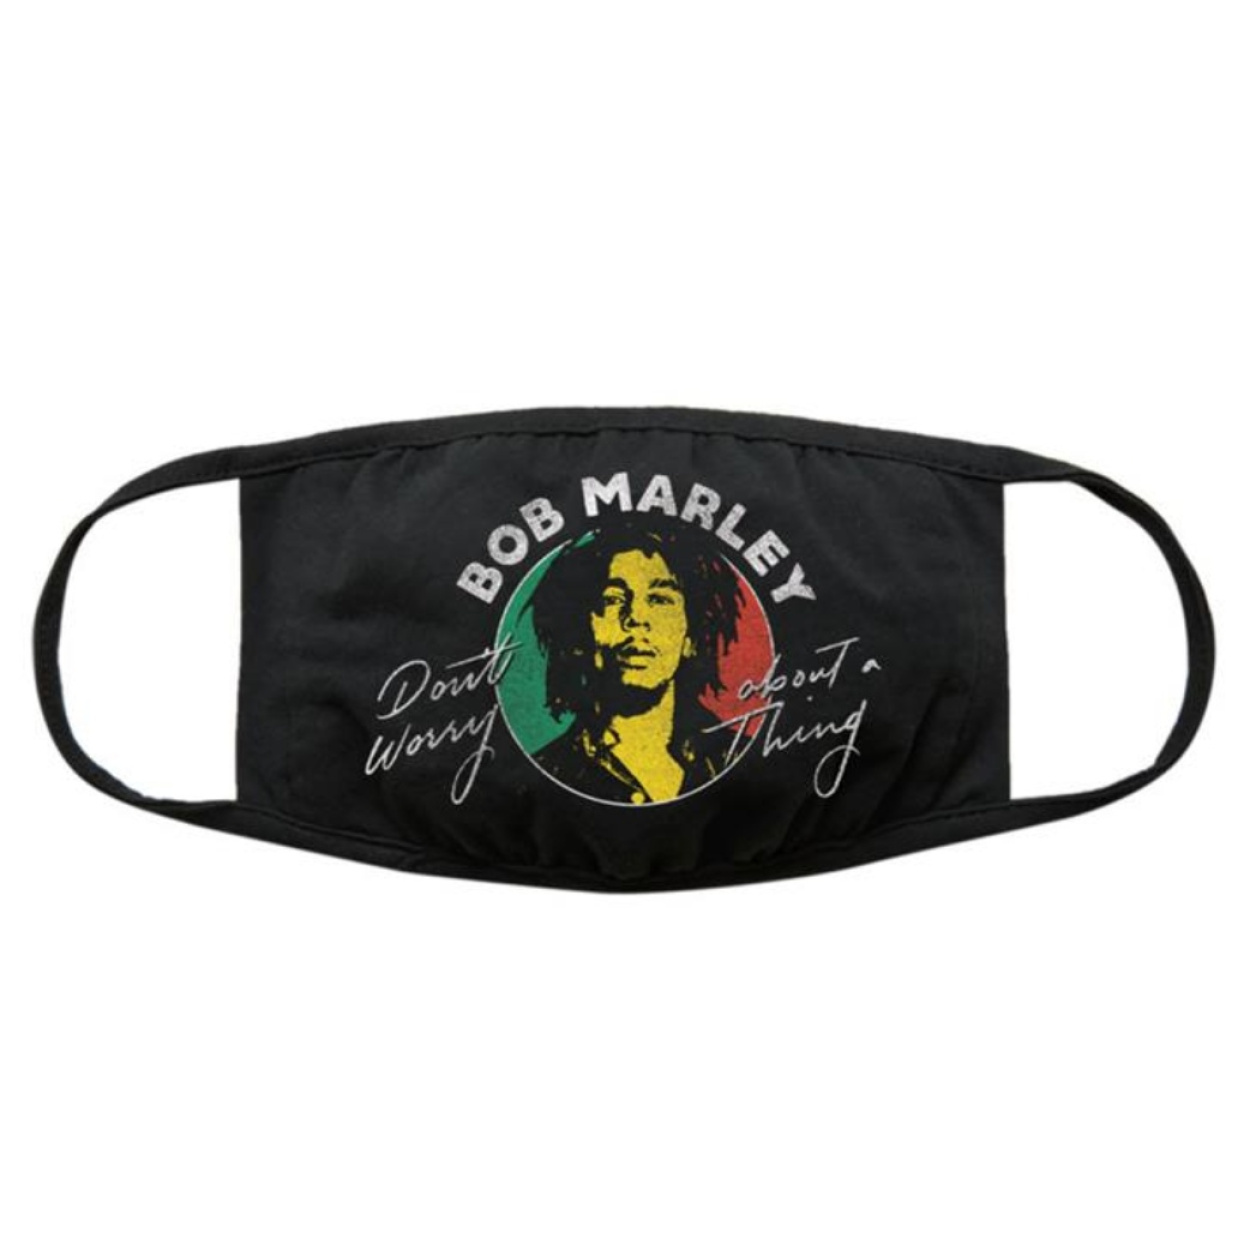 Bob Marley Don't Worry Face mask available at Penarth Music Centre